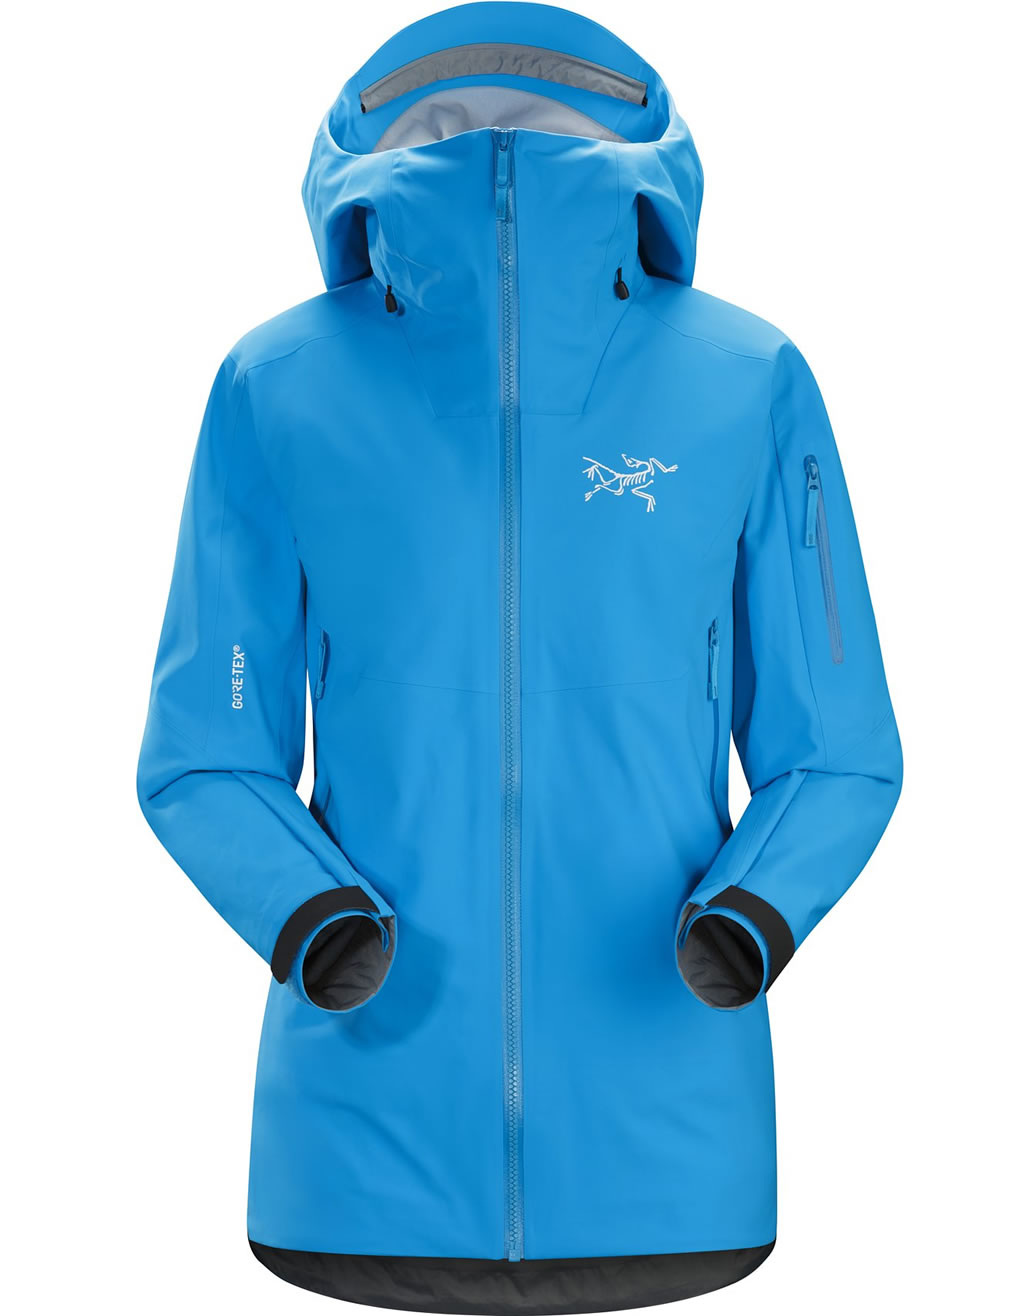 Sentinel Ski Jacket by Arc'teryx